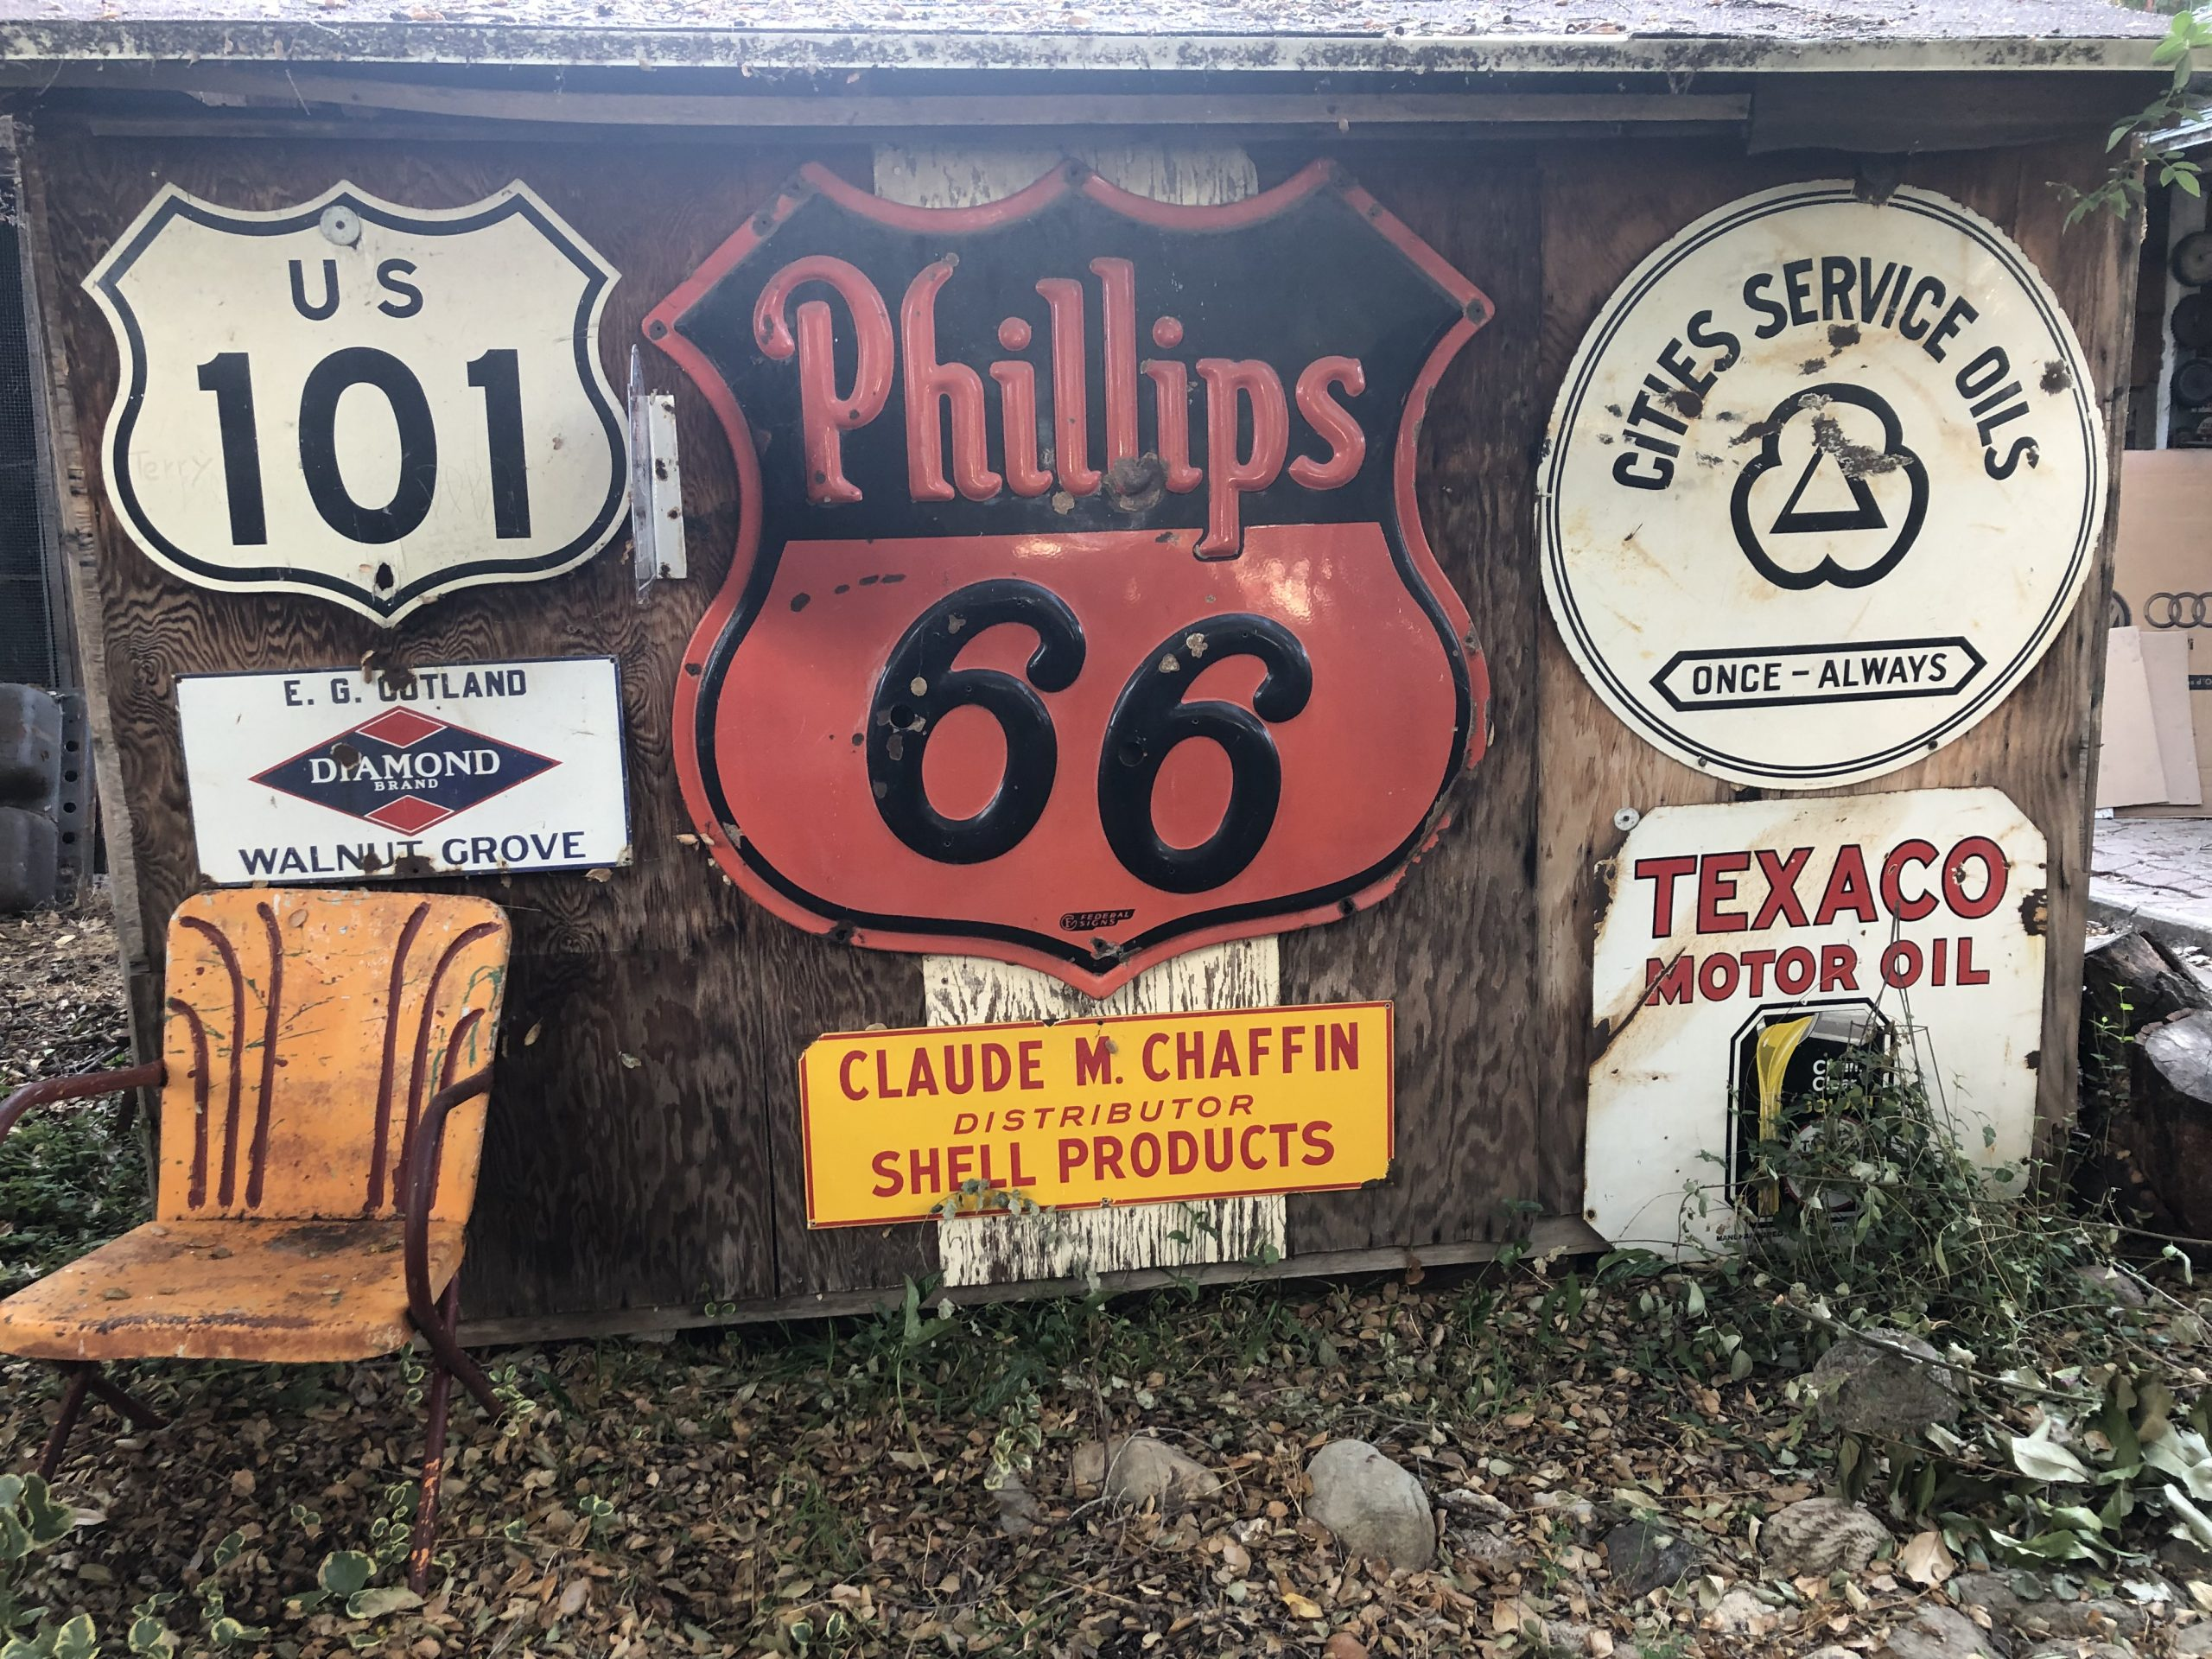 phillips 66 texaco diamond US 101 vintage signs on shed wall